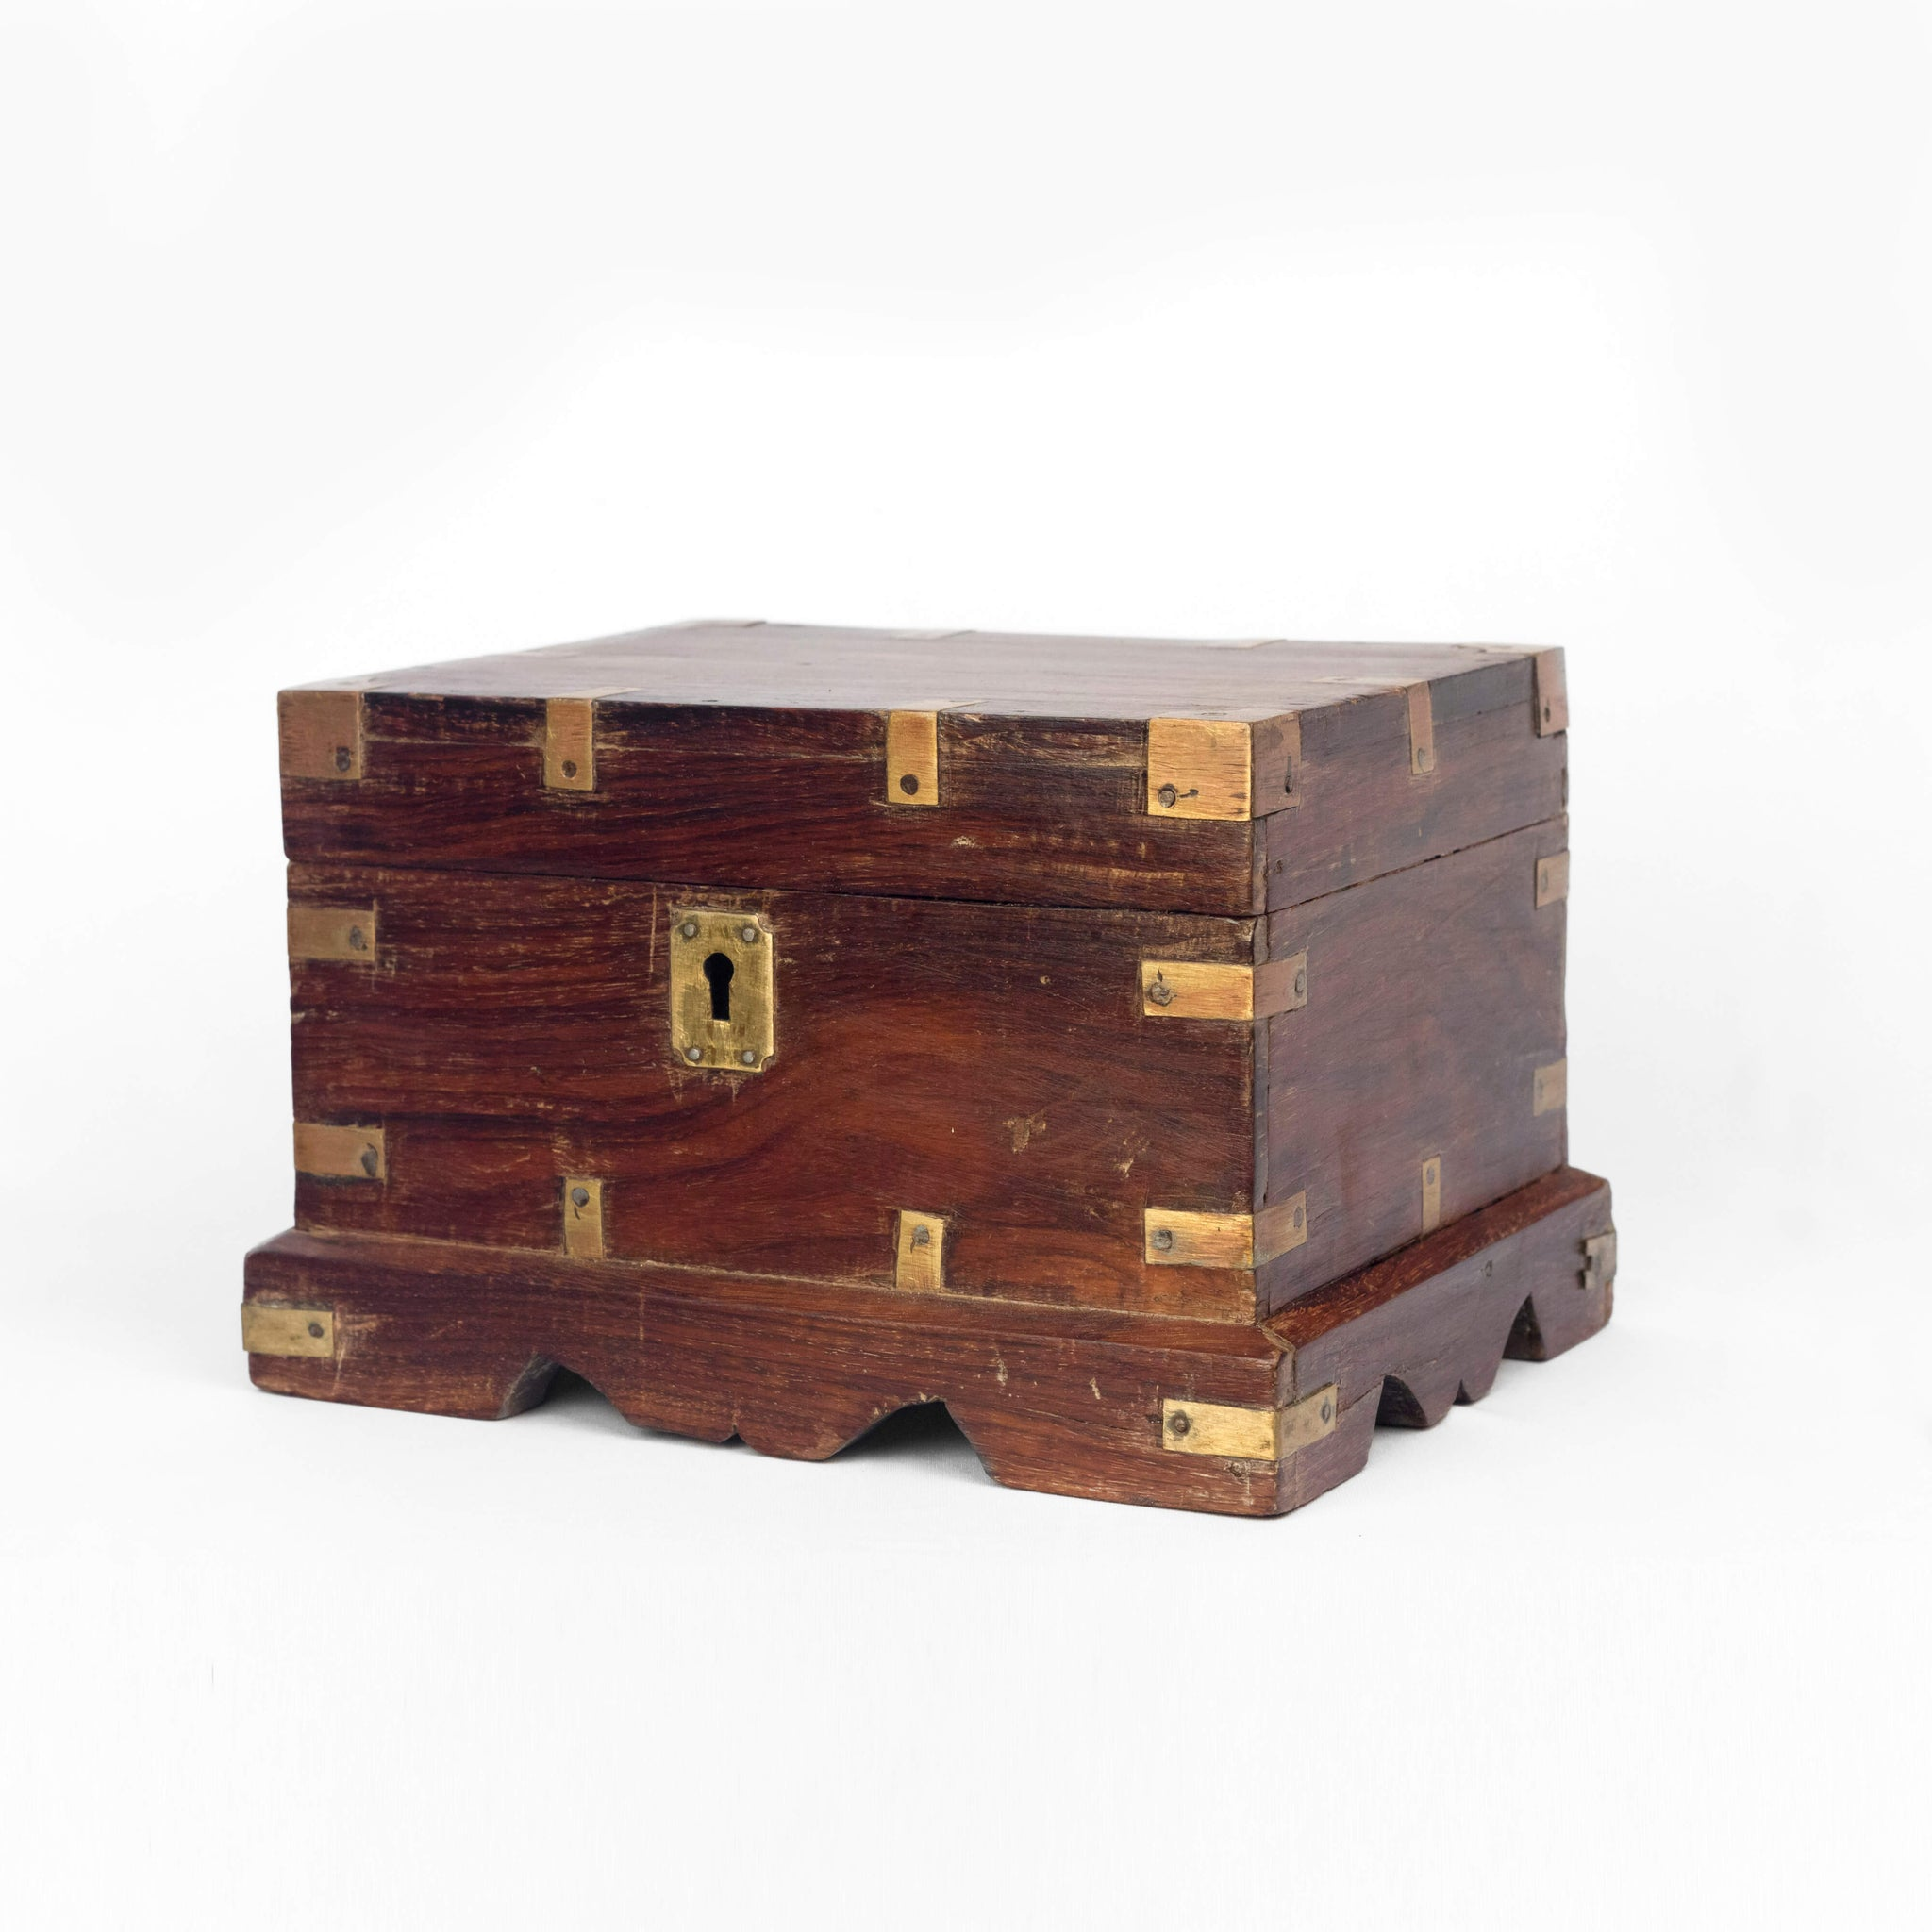 WOODEN CASH BOX WITH BRASS FITTINGS